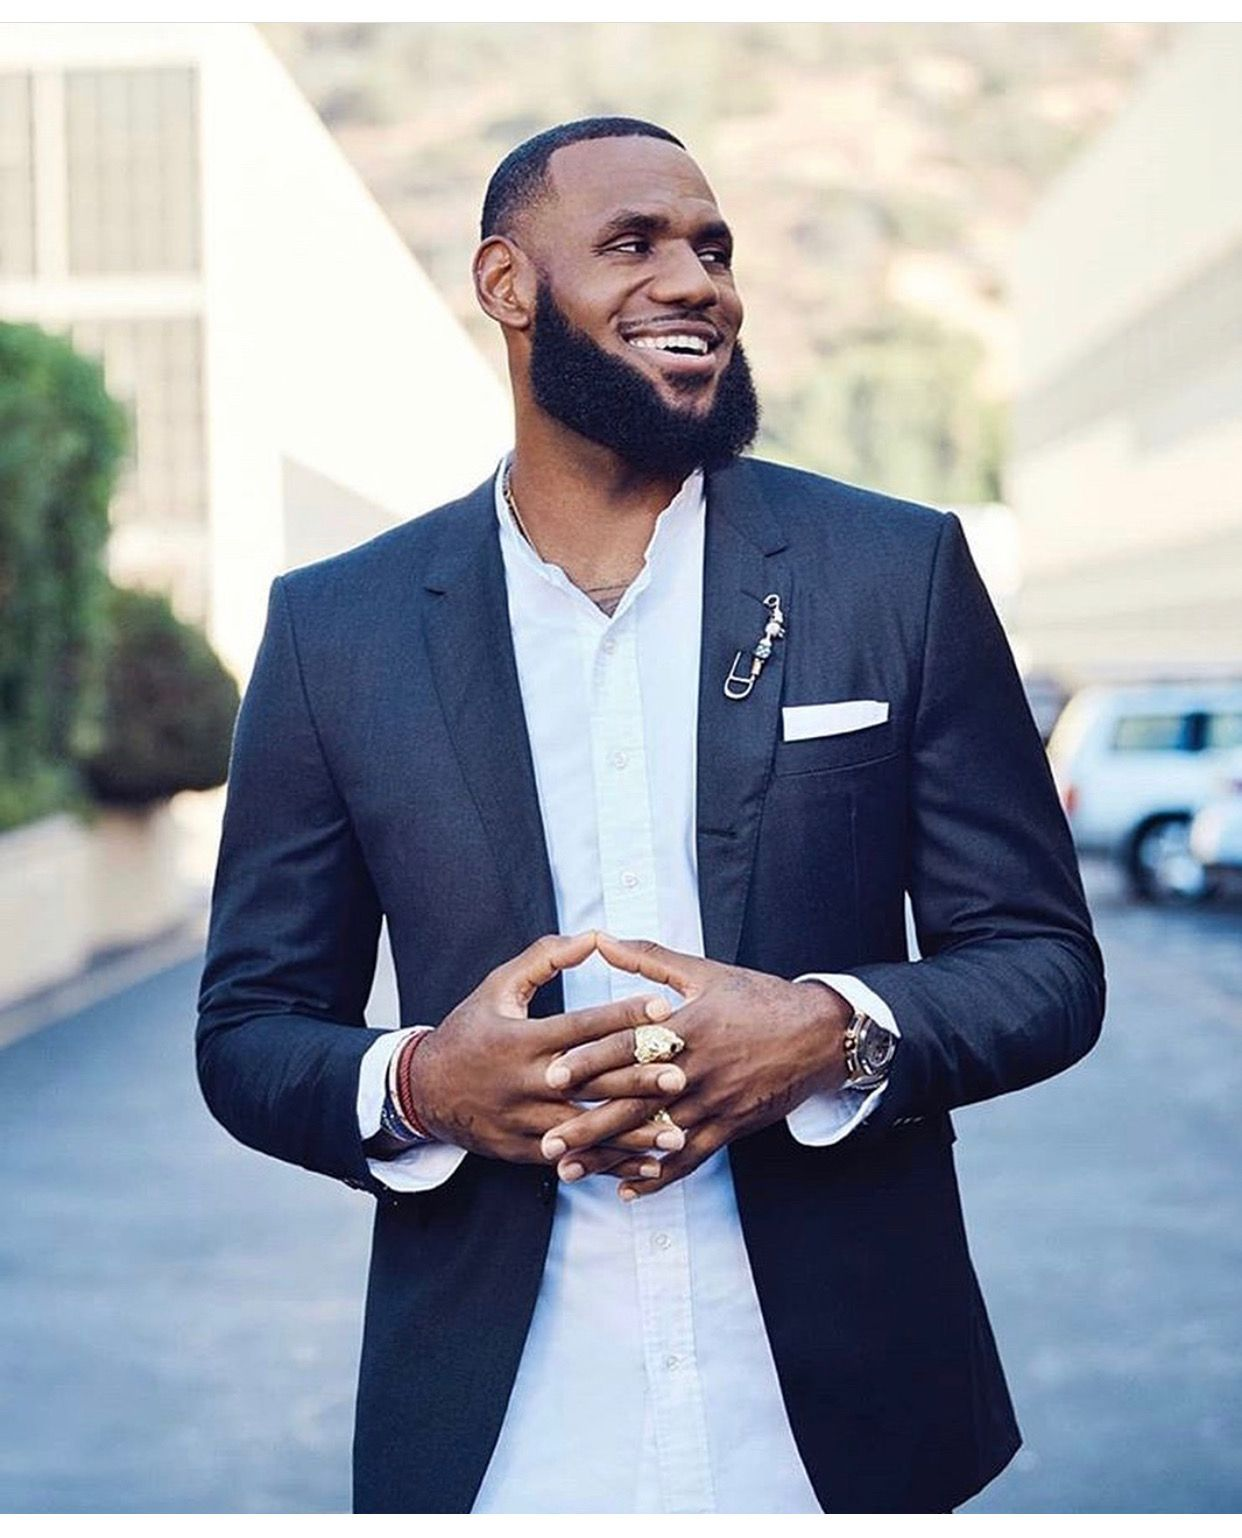 Image result for manly picture of lebron james